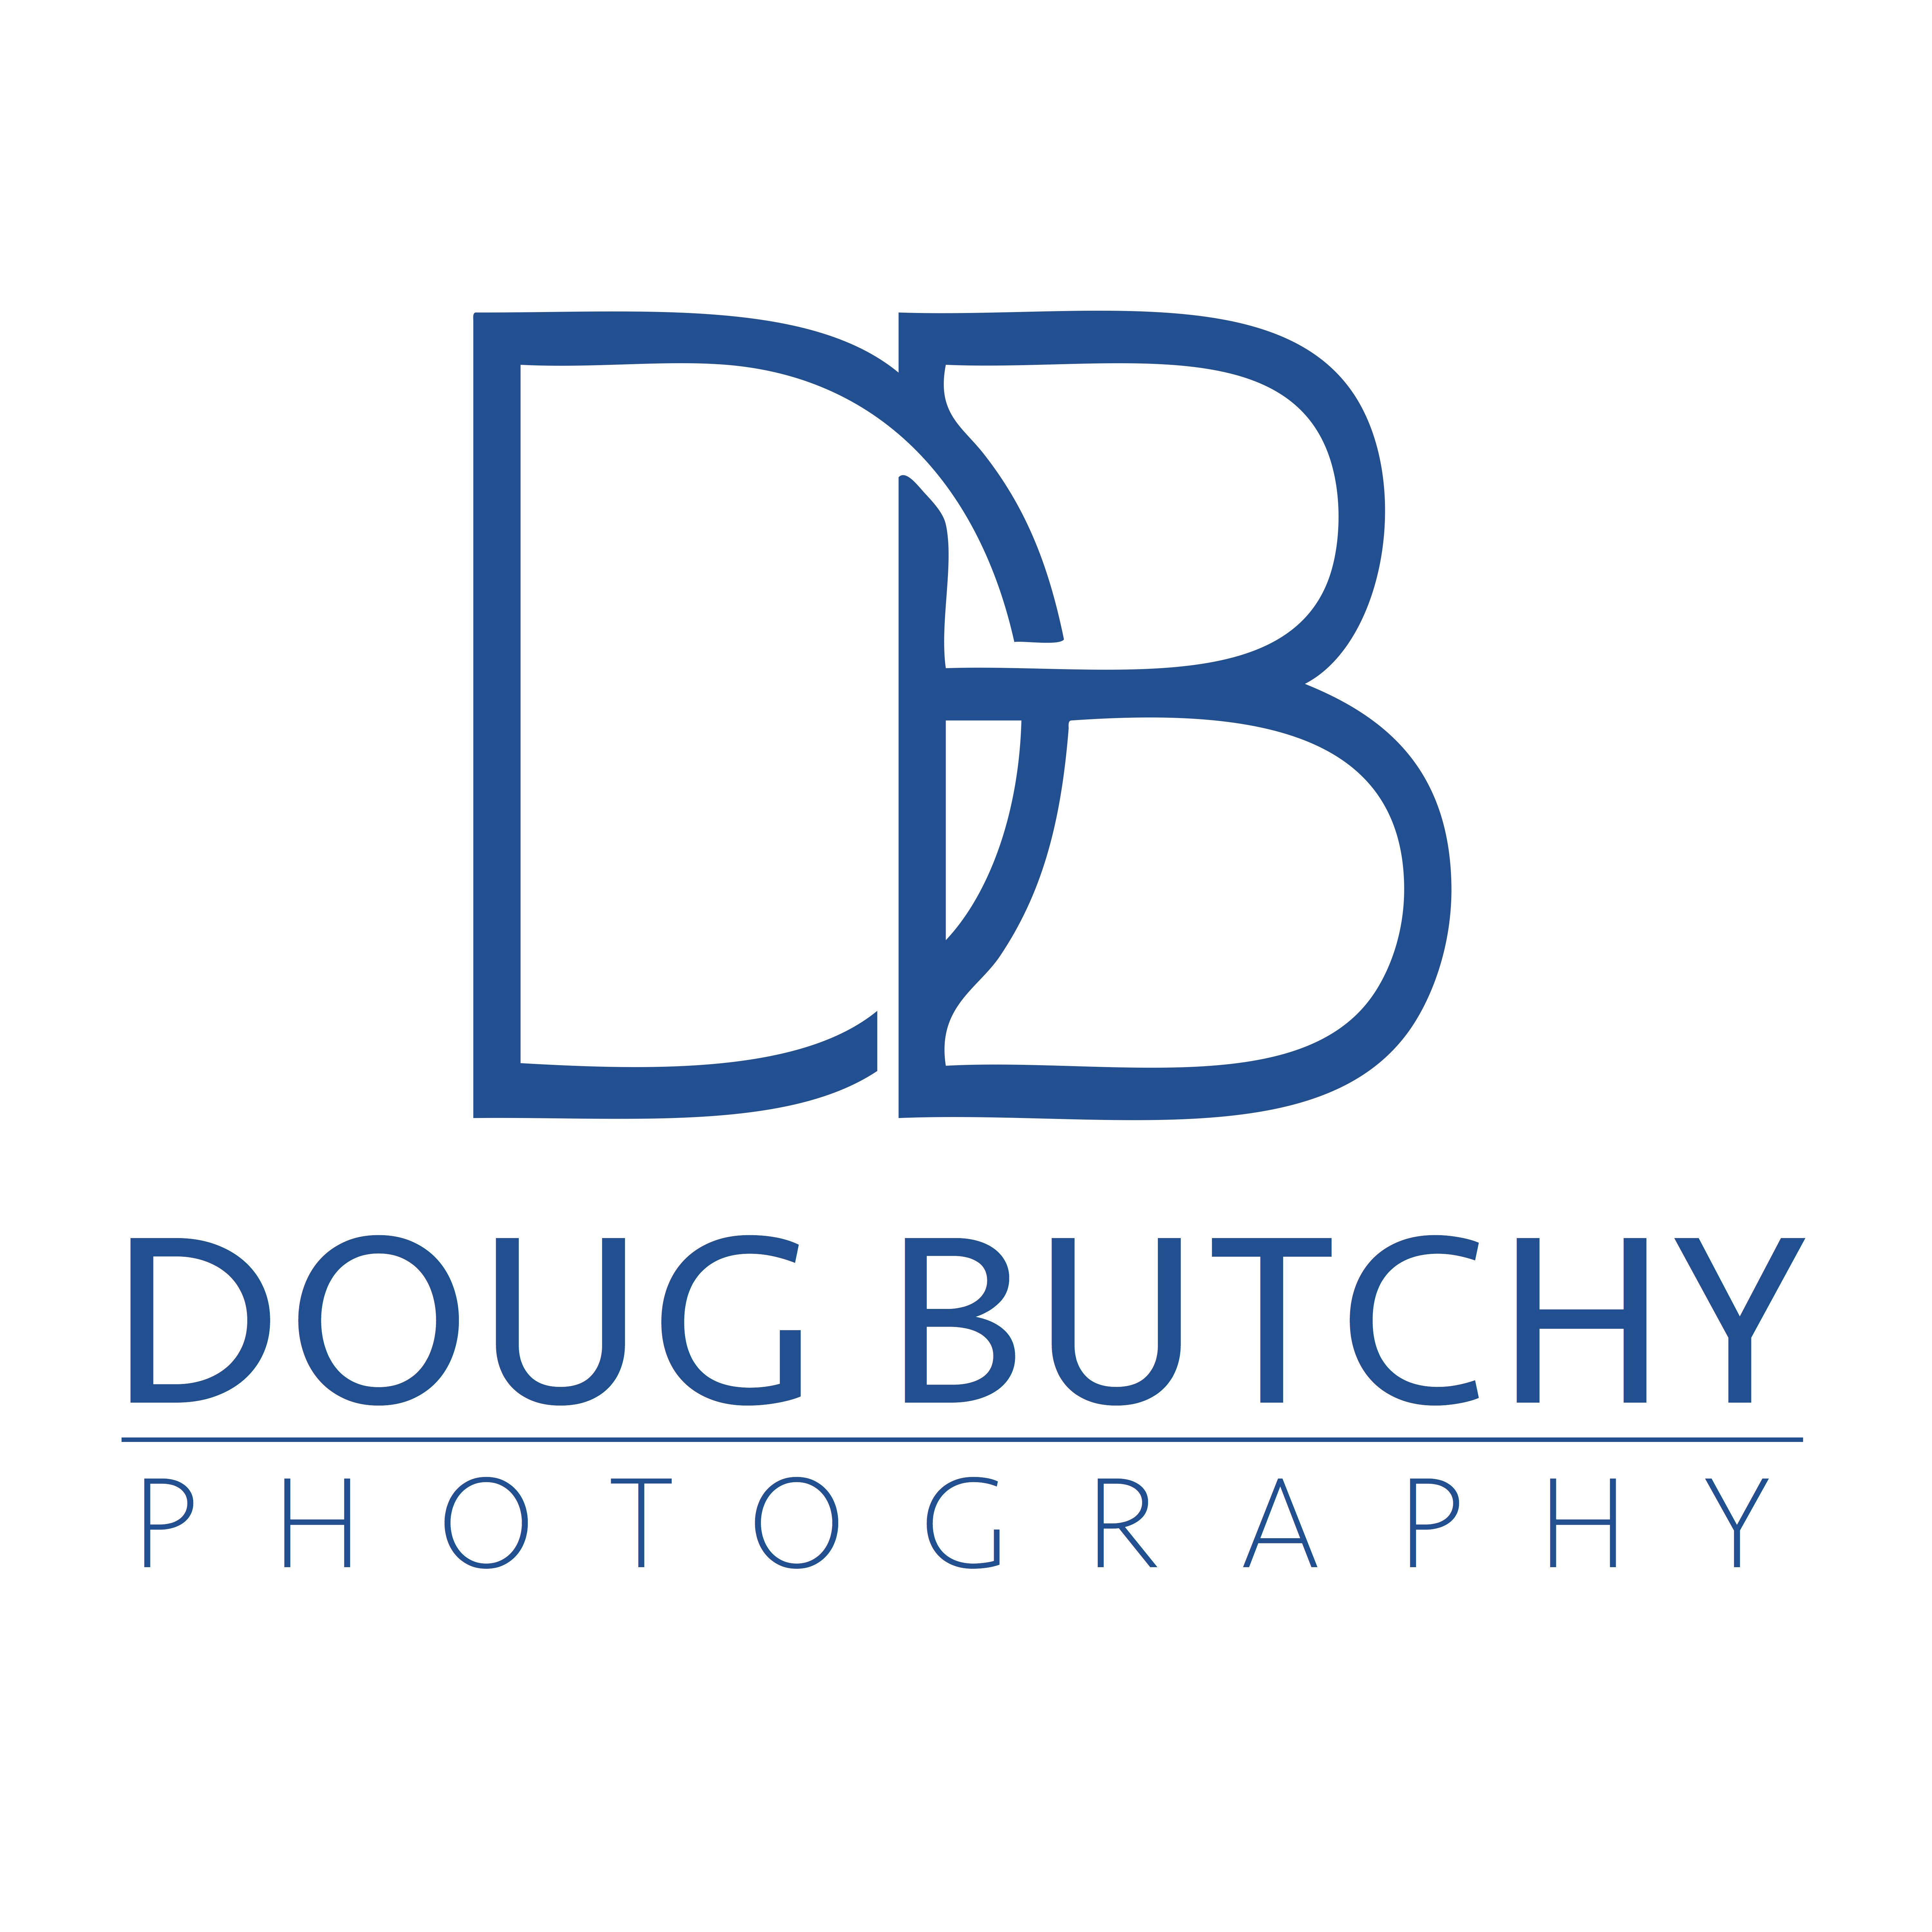 Doug Butchy Photography